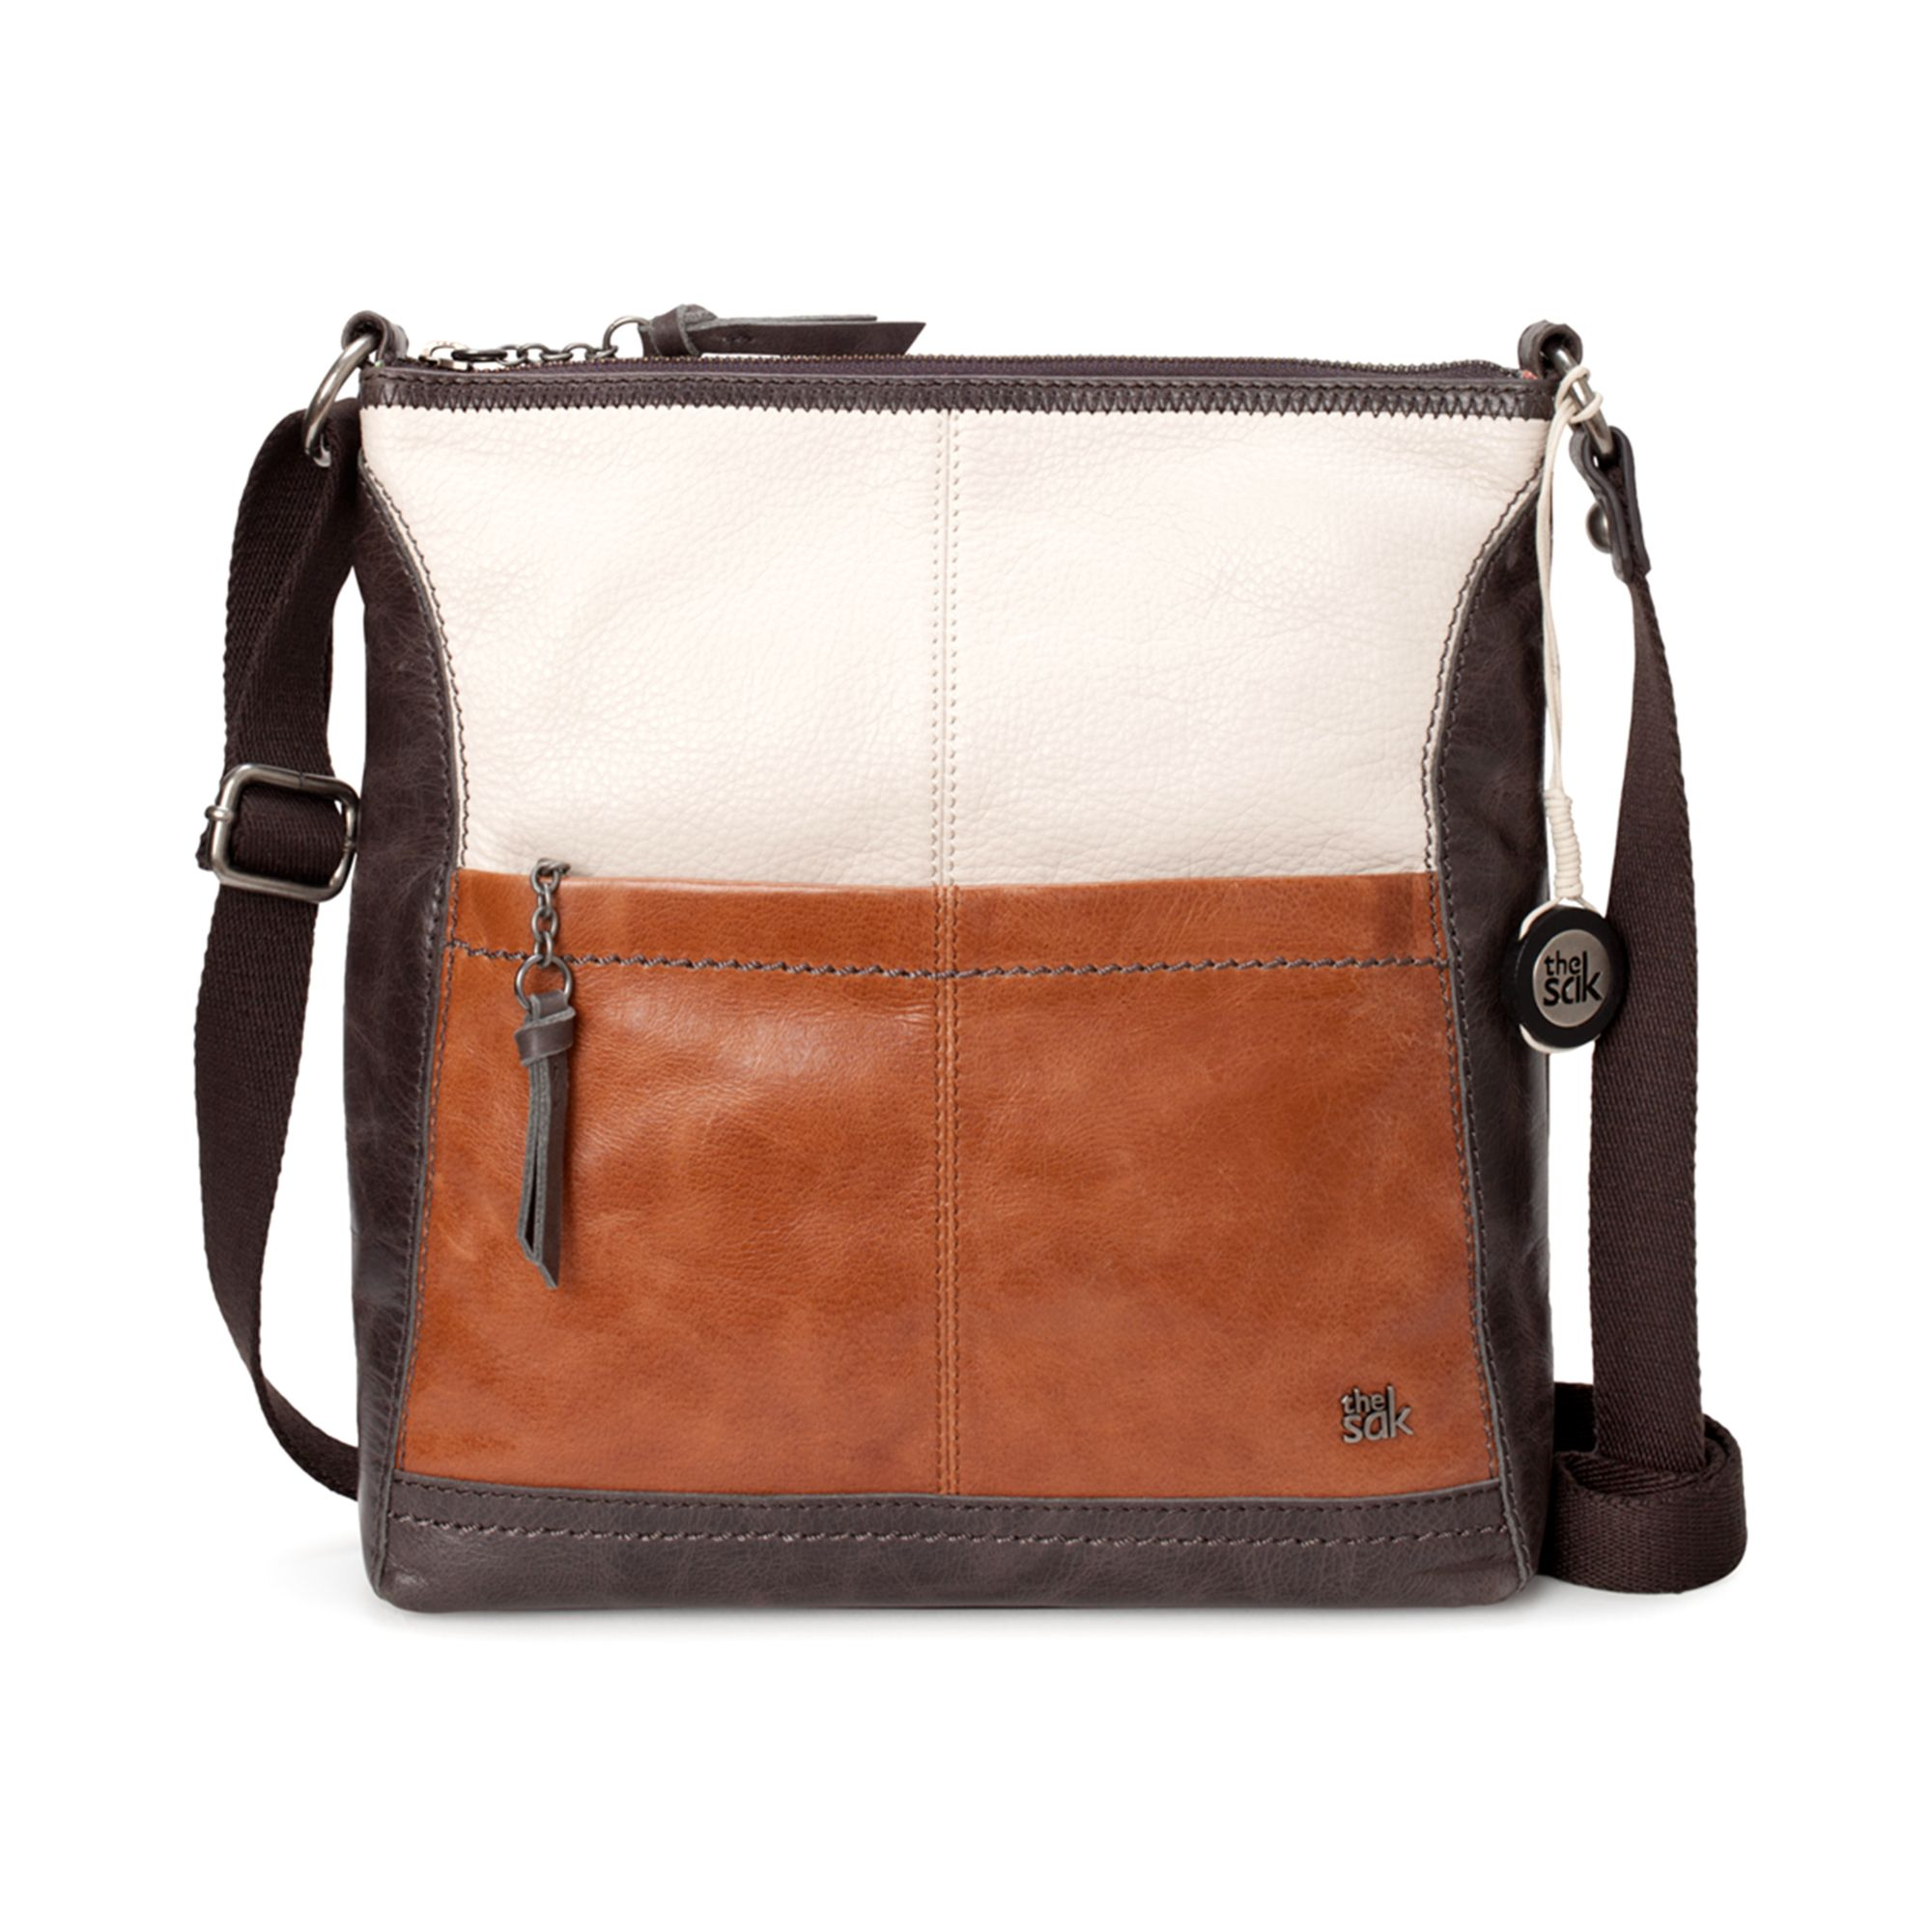 Lyst - The Sak Iris Leather Crossbody Bag in Brown